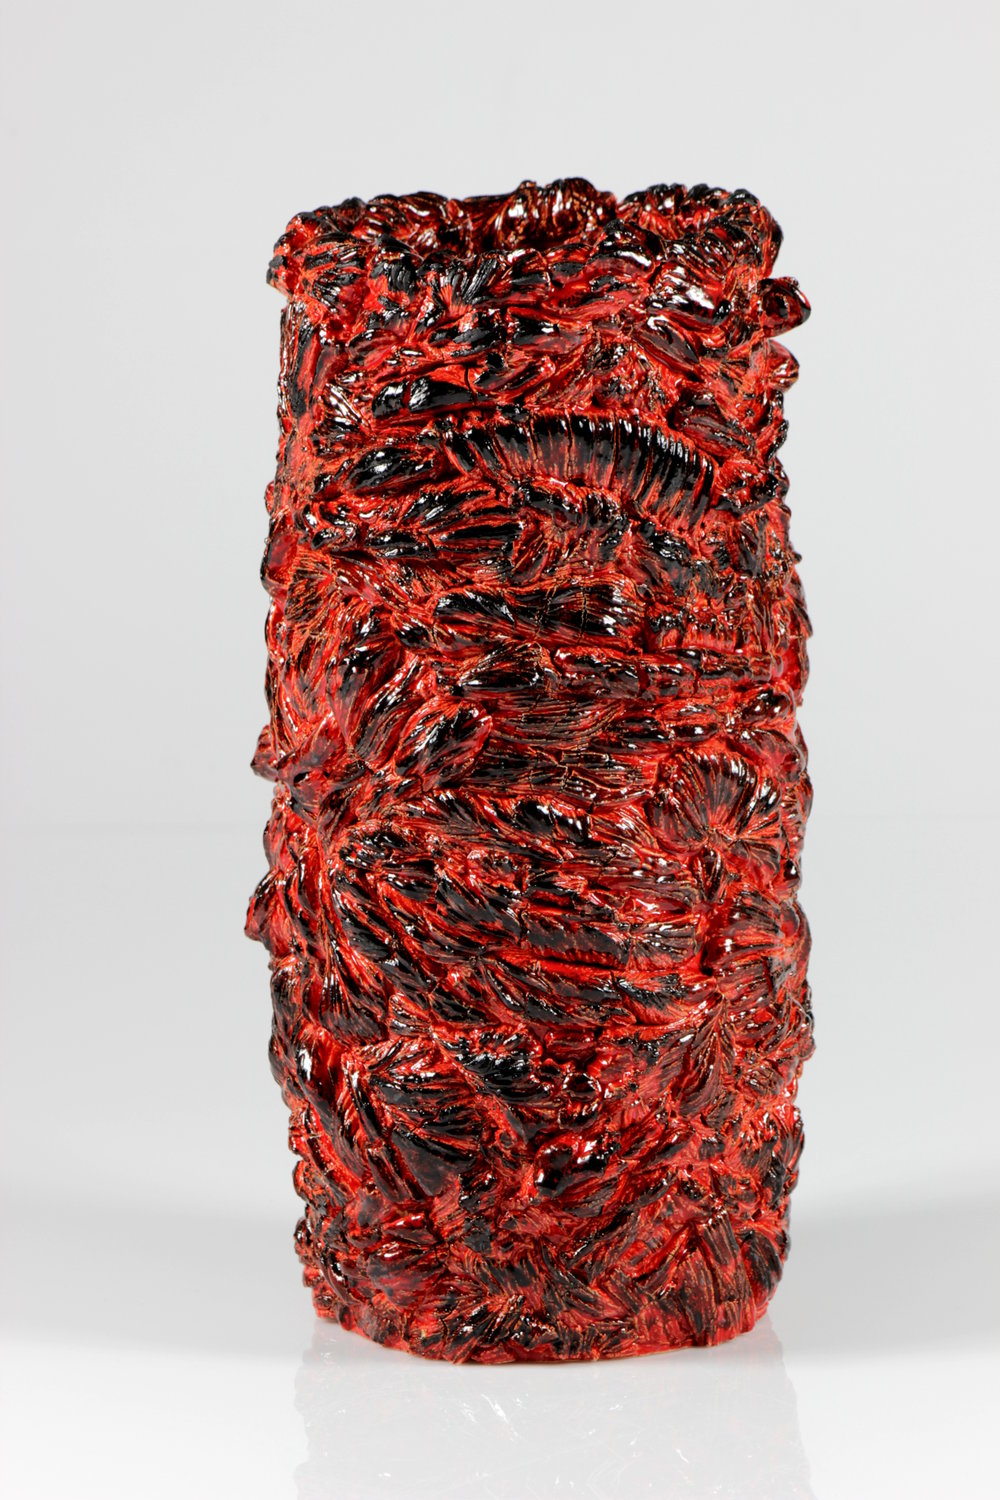 "Lava Fields  ,  2015, Ceramic, Low Fire, 12.5"" H x 6"" W x 6"" D"